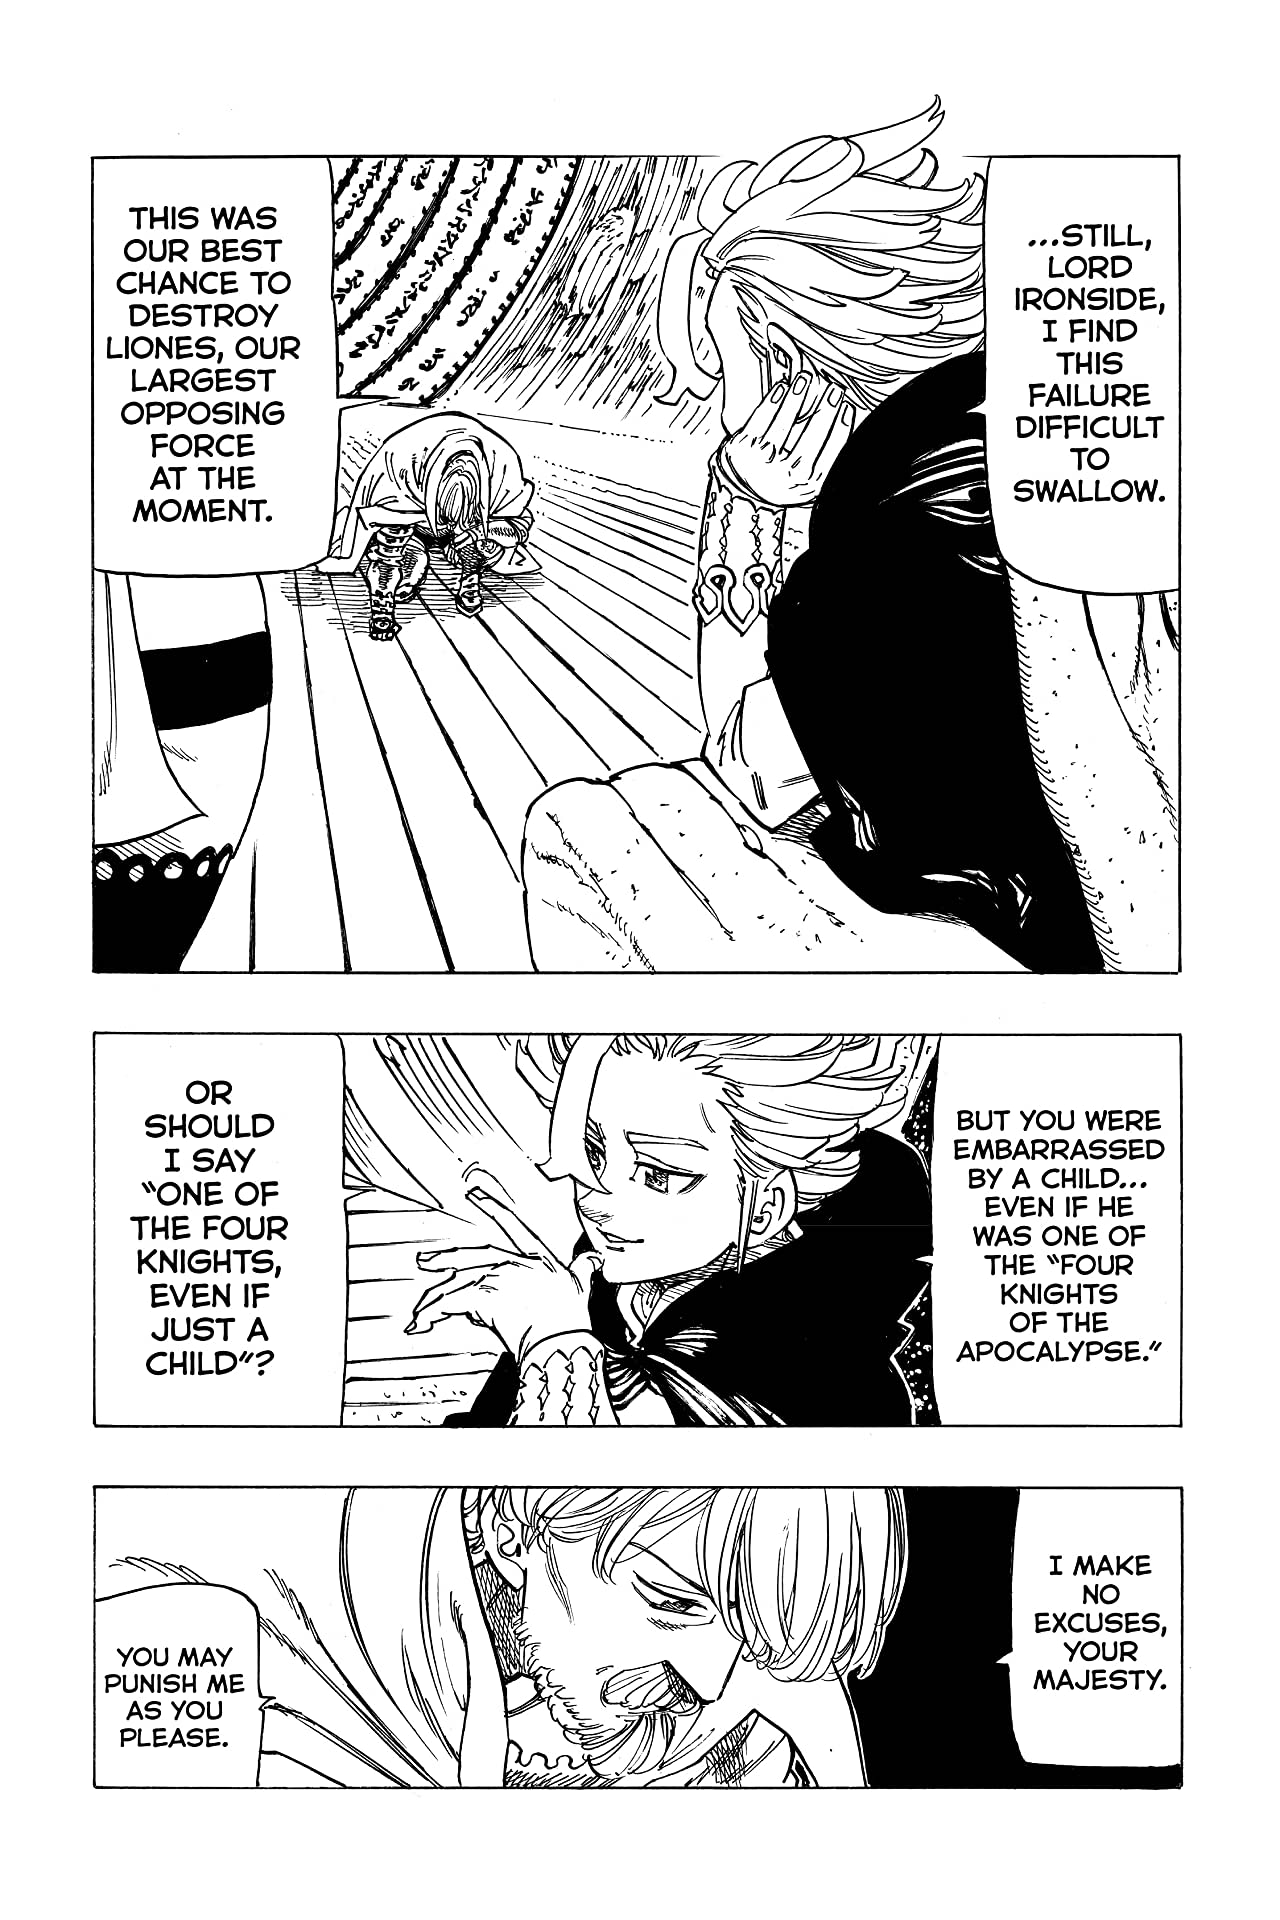 The Seven Deadly Sins: Four Knights of the Apocalypse #23